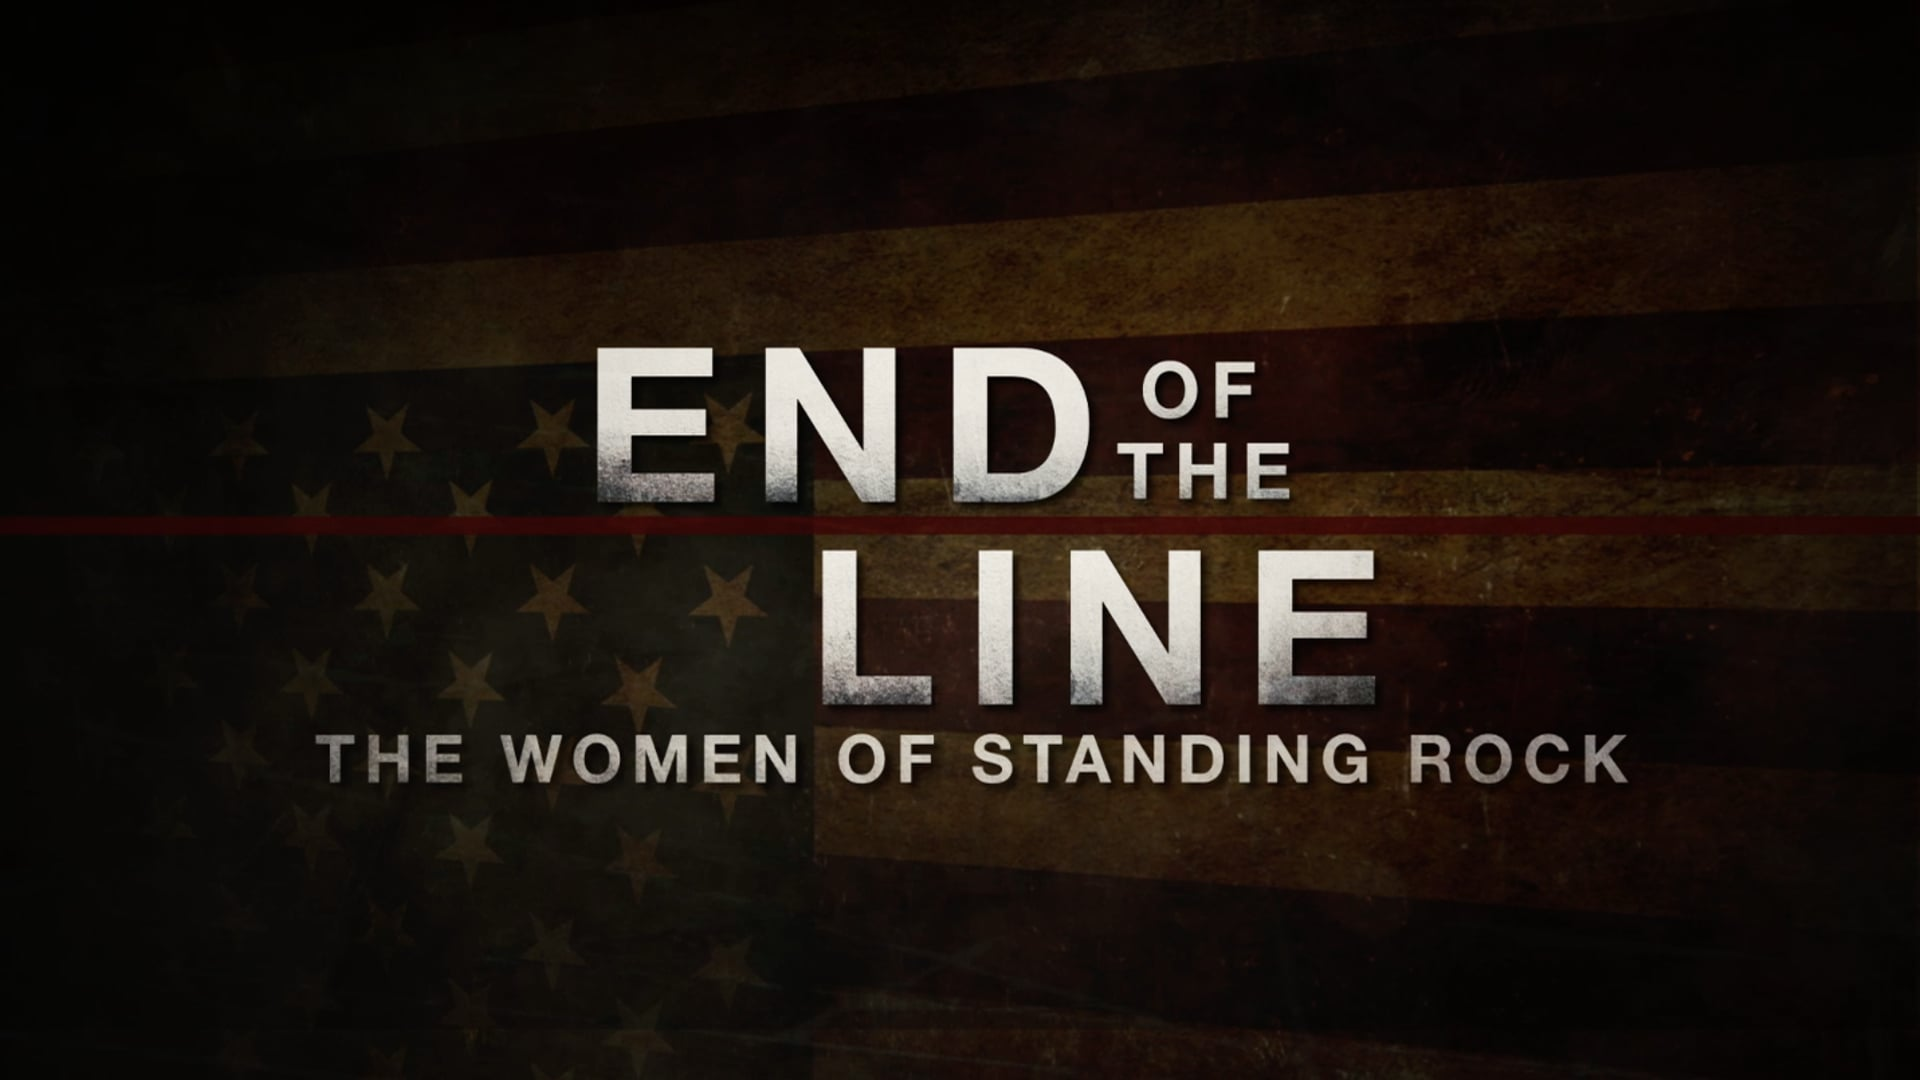 END OF THE LINE: THE WOMEN OF STANDING ROCK Trailer